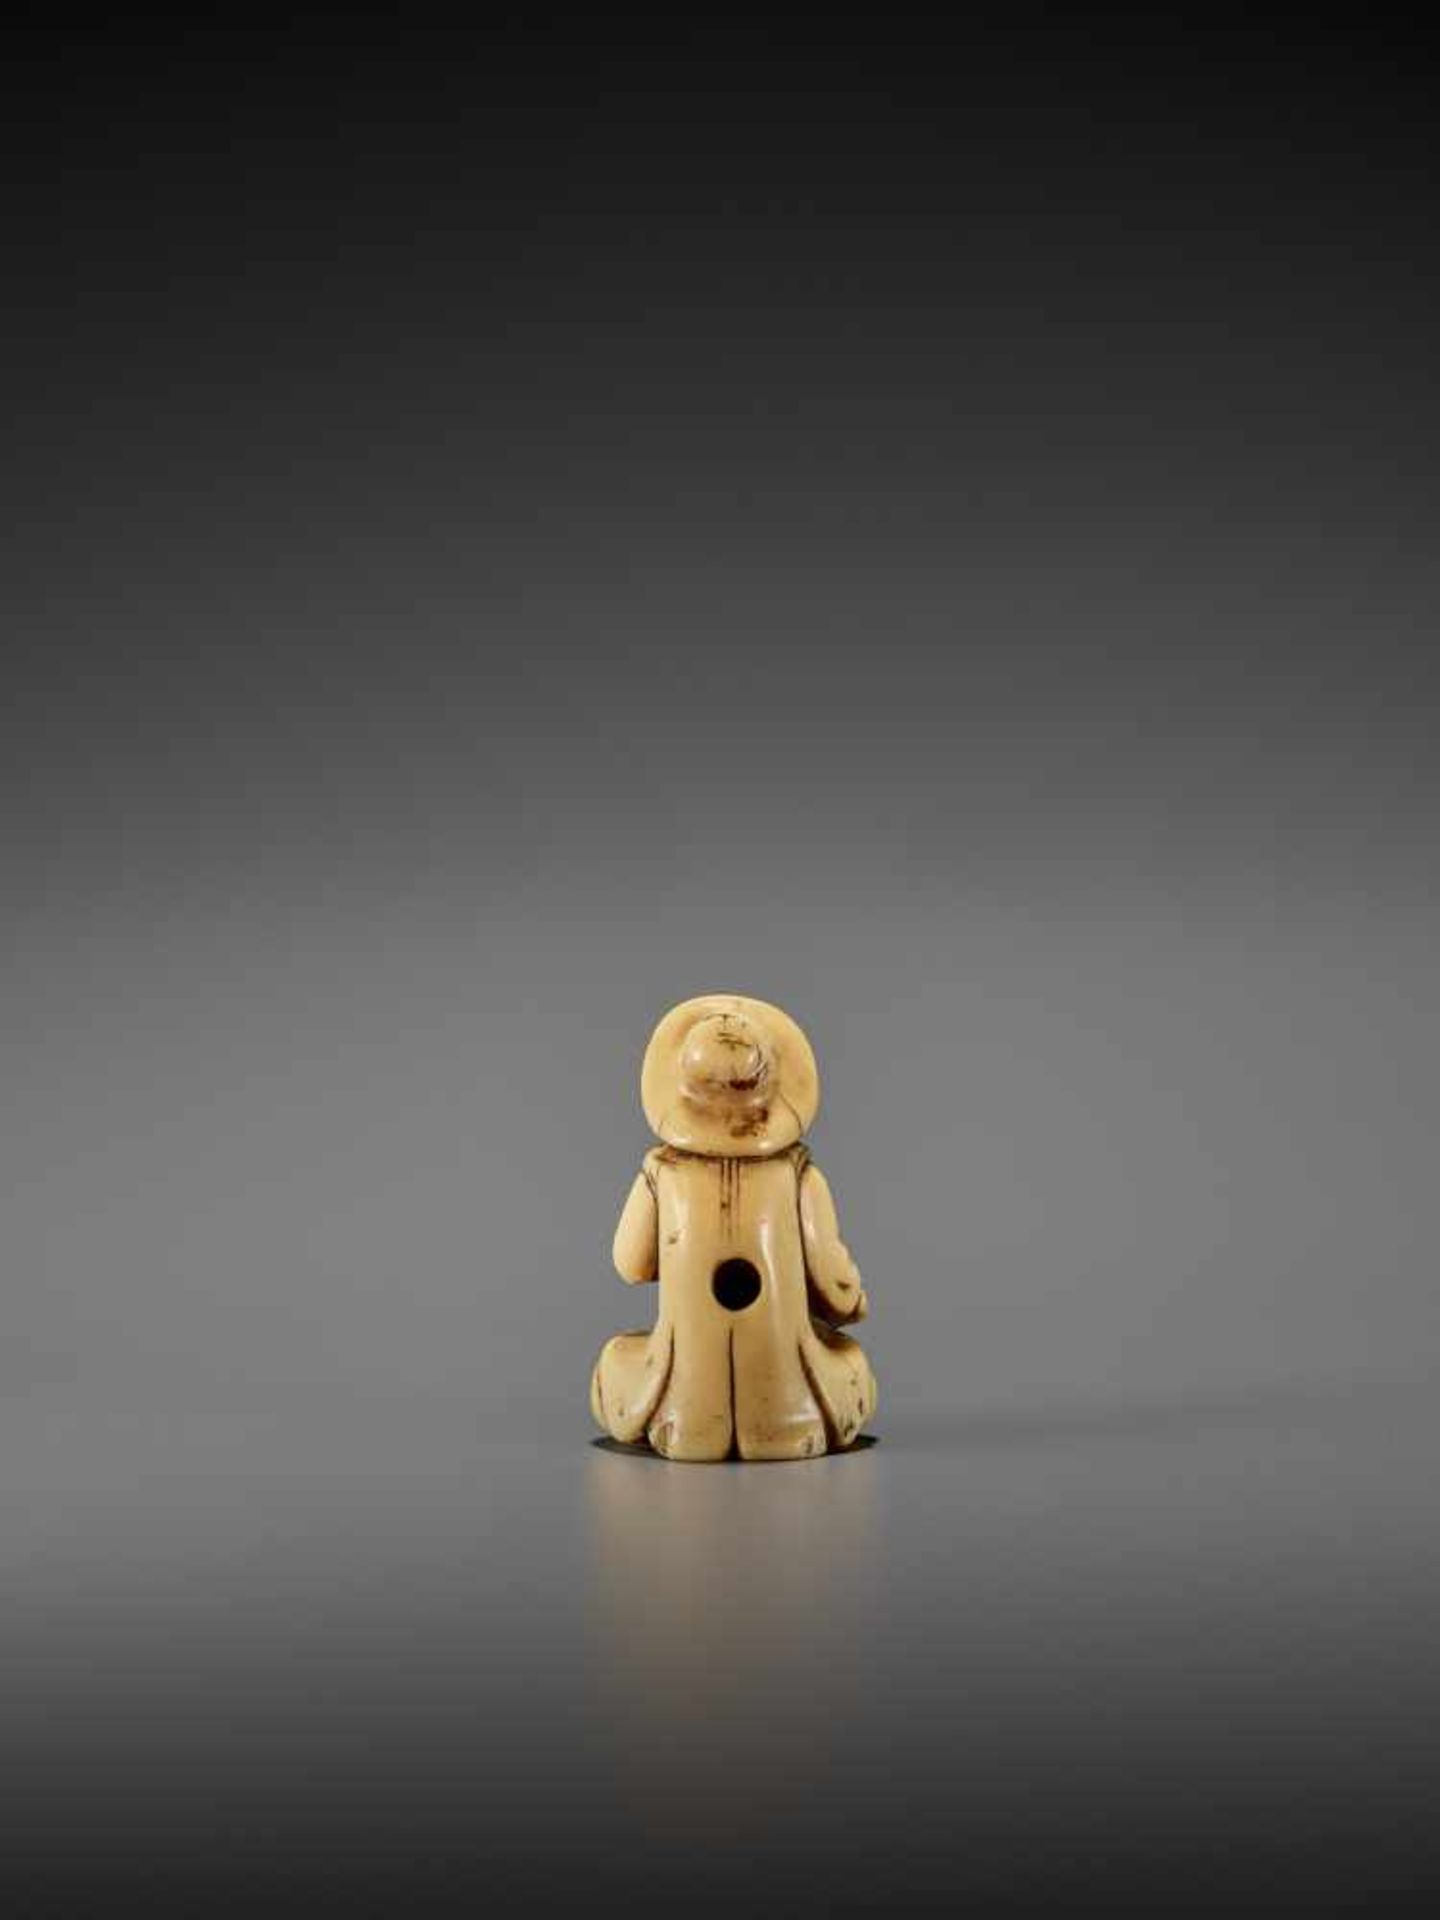 AN IVORY NETSUKE OF A DUTCHMAN WITH DRUM UnsignedJapan, late 18th century, Edo period (1615-1868) - Image 2 of 7